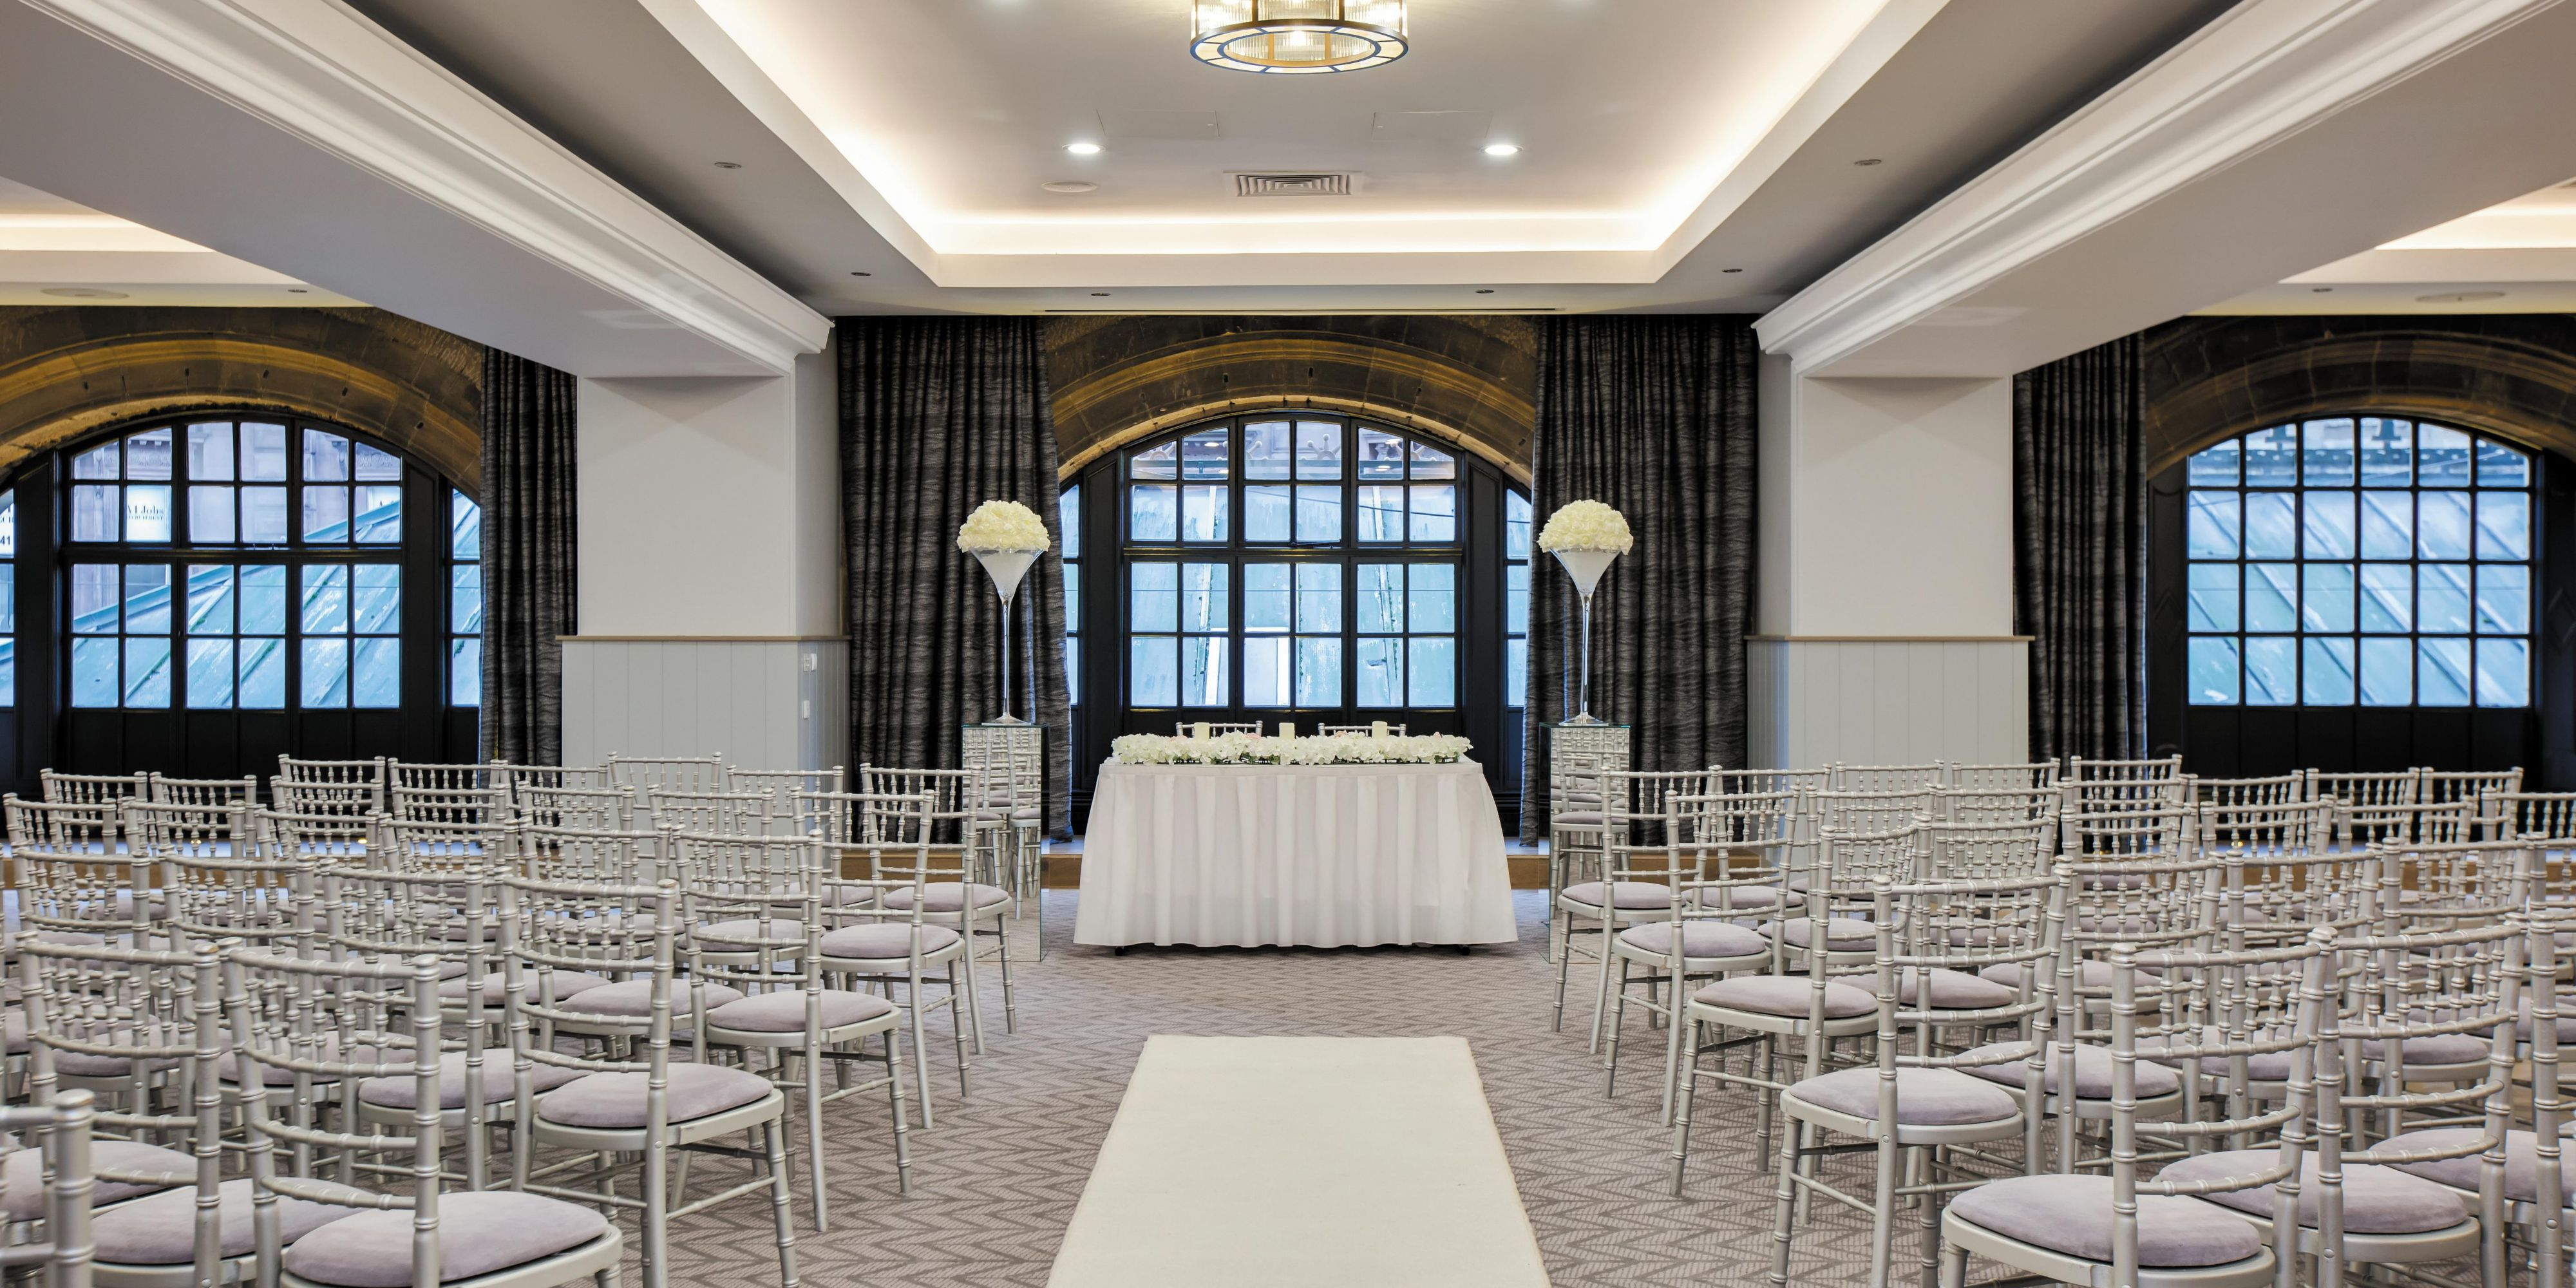 The beautiful Victoria suite set for a wedding ceremony